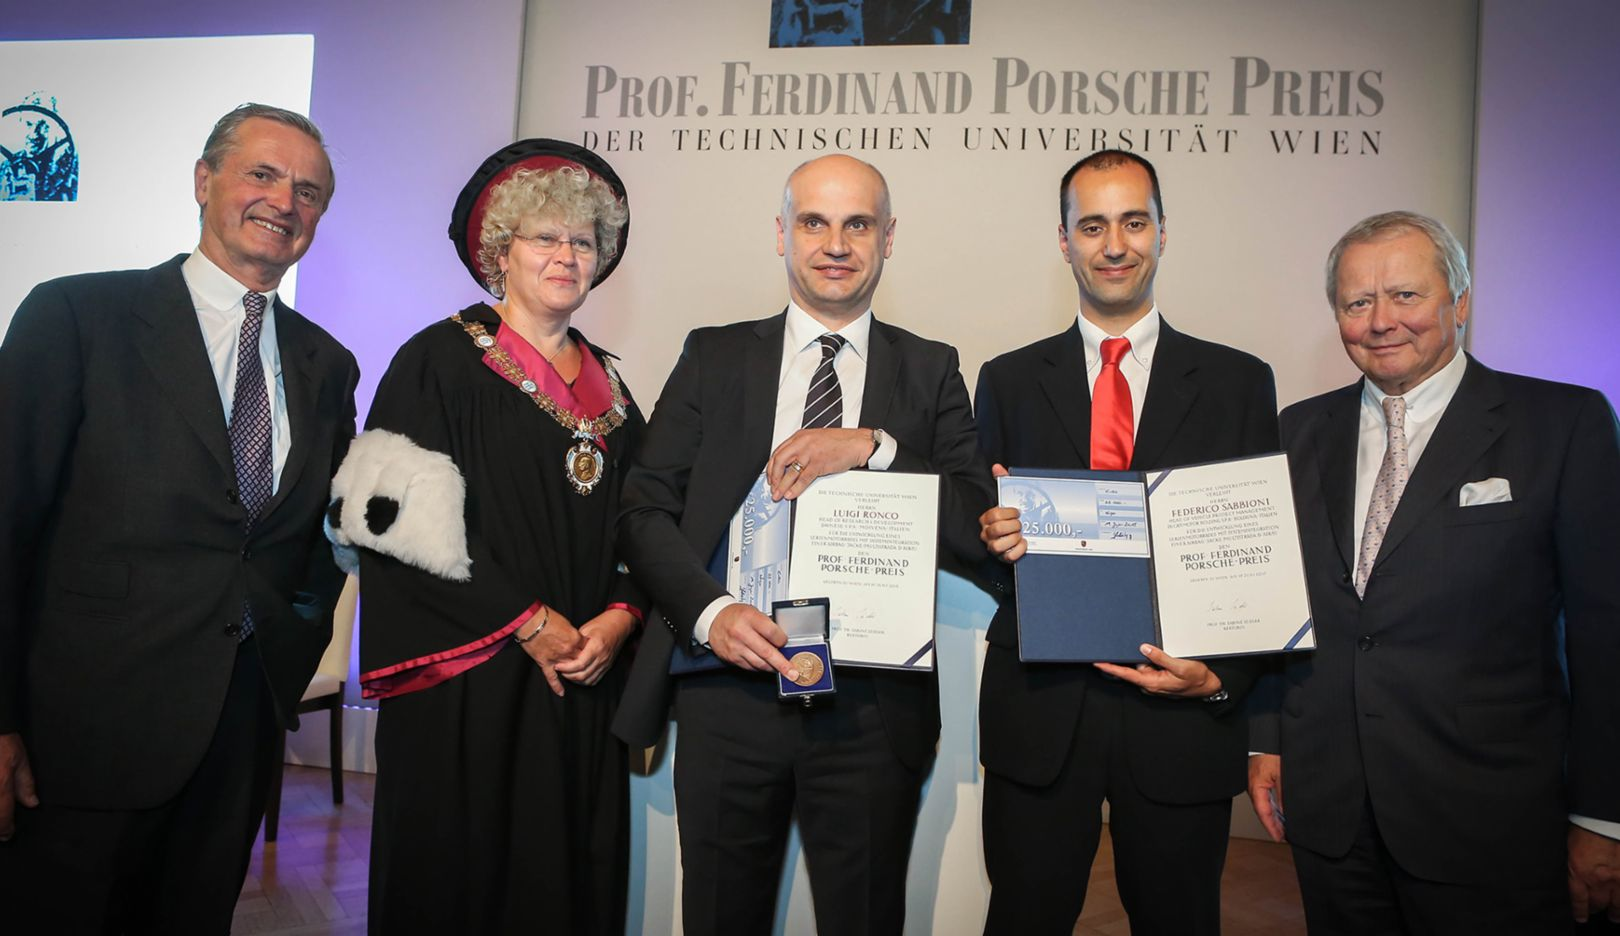 Dr Wolfgang Porsche, Chairman of the Supervisory Board of Dr. Ing. h.c. F. Porsche AG (r), together with Dr Hans Michel Piëch, Member of the Supervisory Board of Porsche AG, O. Univ. Prof. DI Dr Sabine Seidler, Rector of TU Wien and both award winners Luigi Ronco, Dainese S.p.A., and Federico Sabbioni, Ducati Motor Holding S.p.A. (l-r),  Professor Ferdinand Porsche Prize, 2015, Porsche AG